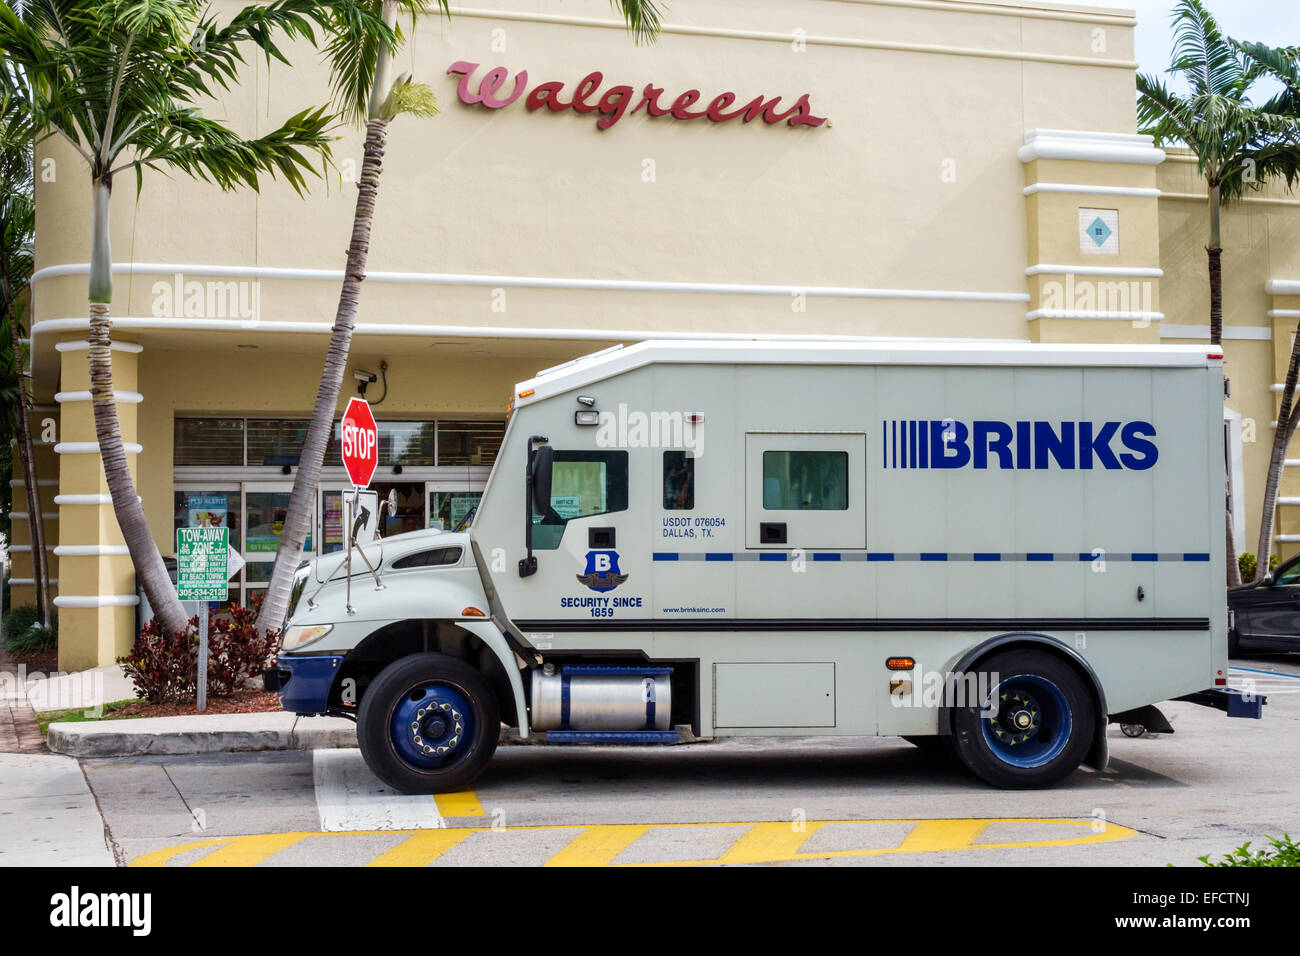 Brinks truck miami beach florida brinks armored truck security money parked walgreens drugstore pharmacy front stock photo